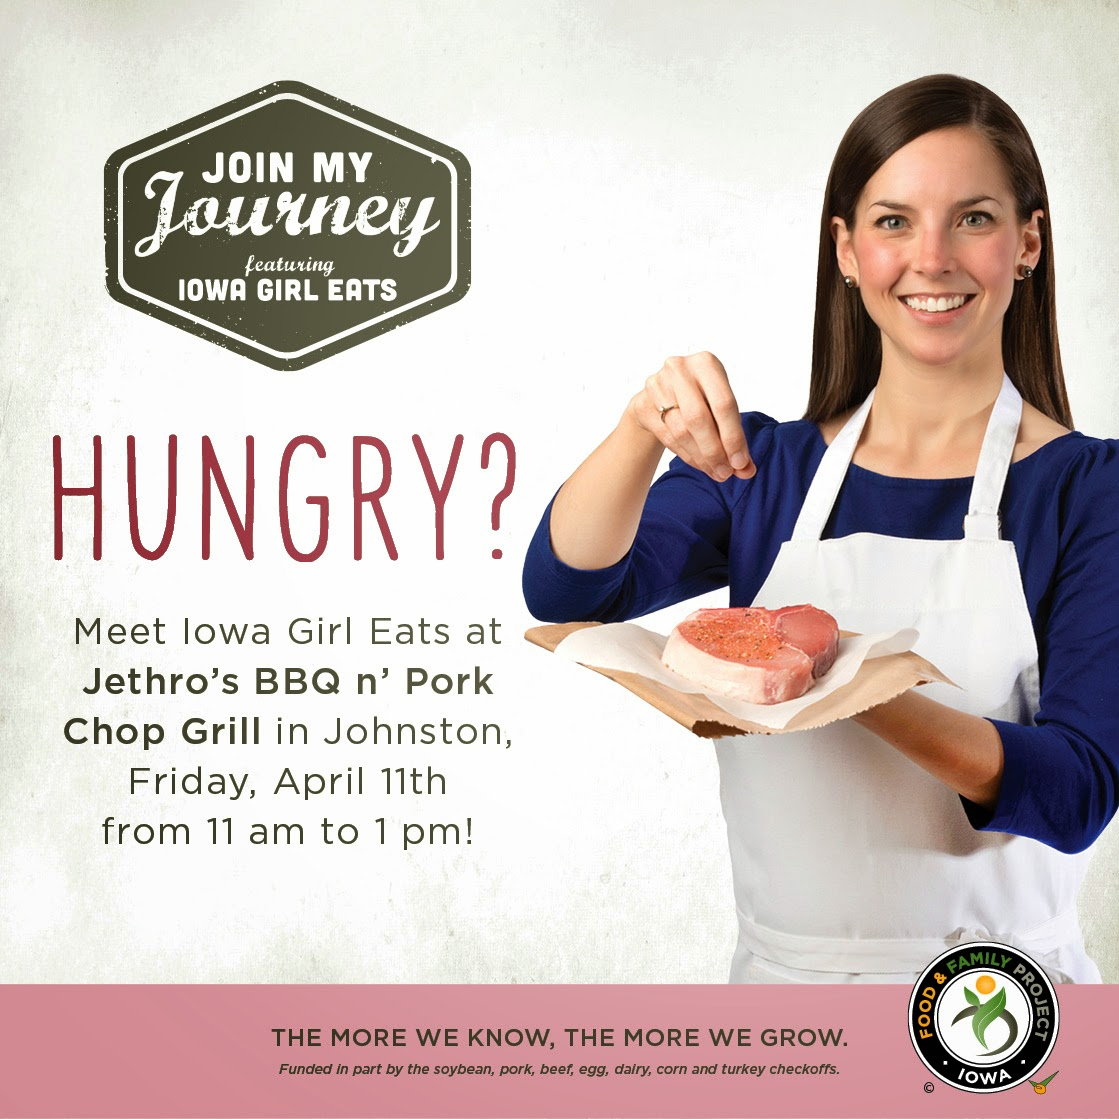 "Iowa Food & Family Project ""Join my Journey"" Meet Iowa Girl Eats at Jethro's in Johnston Friday, April 11th"